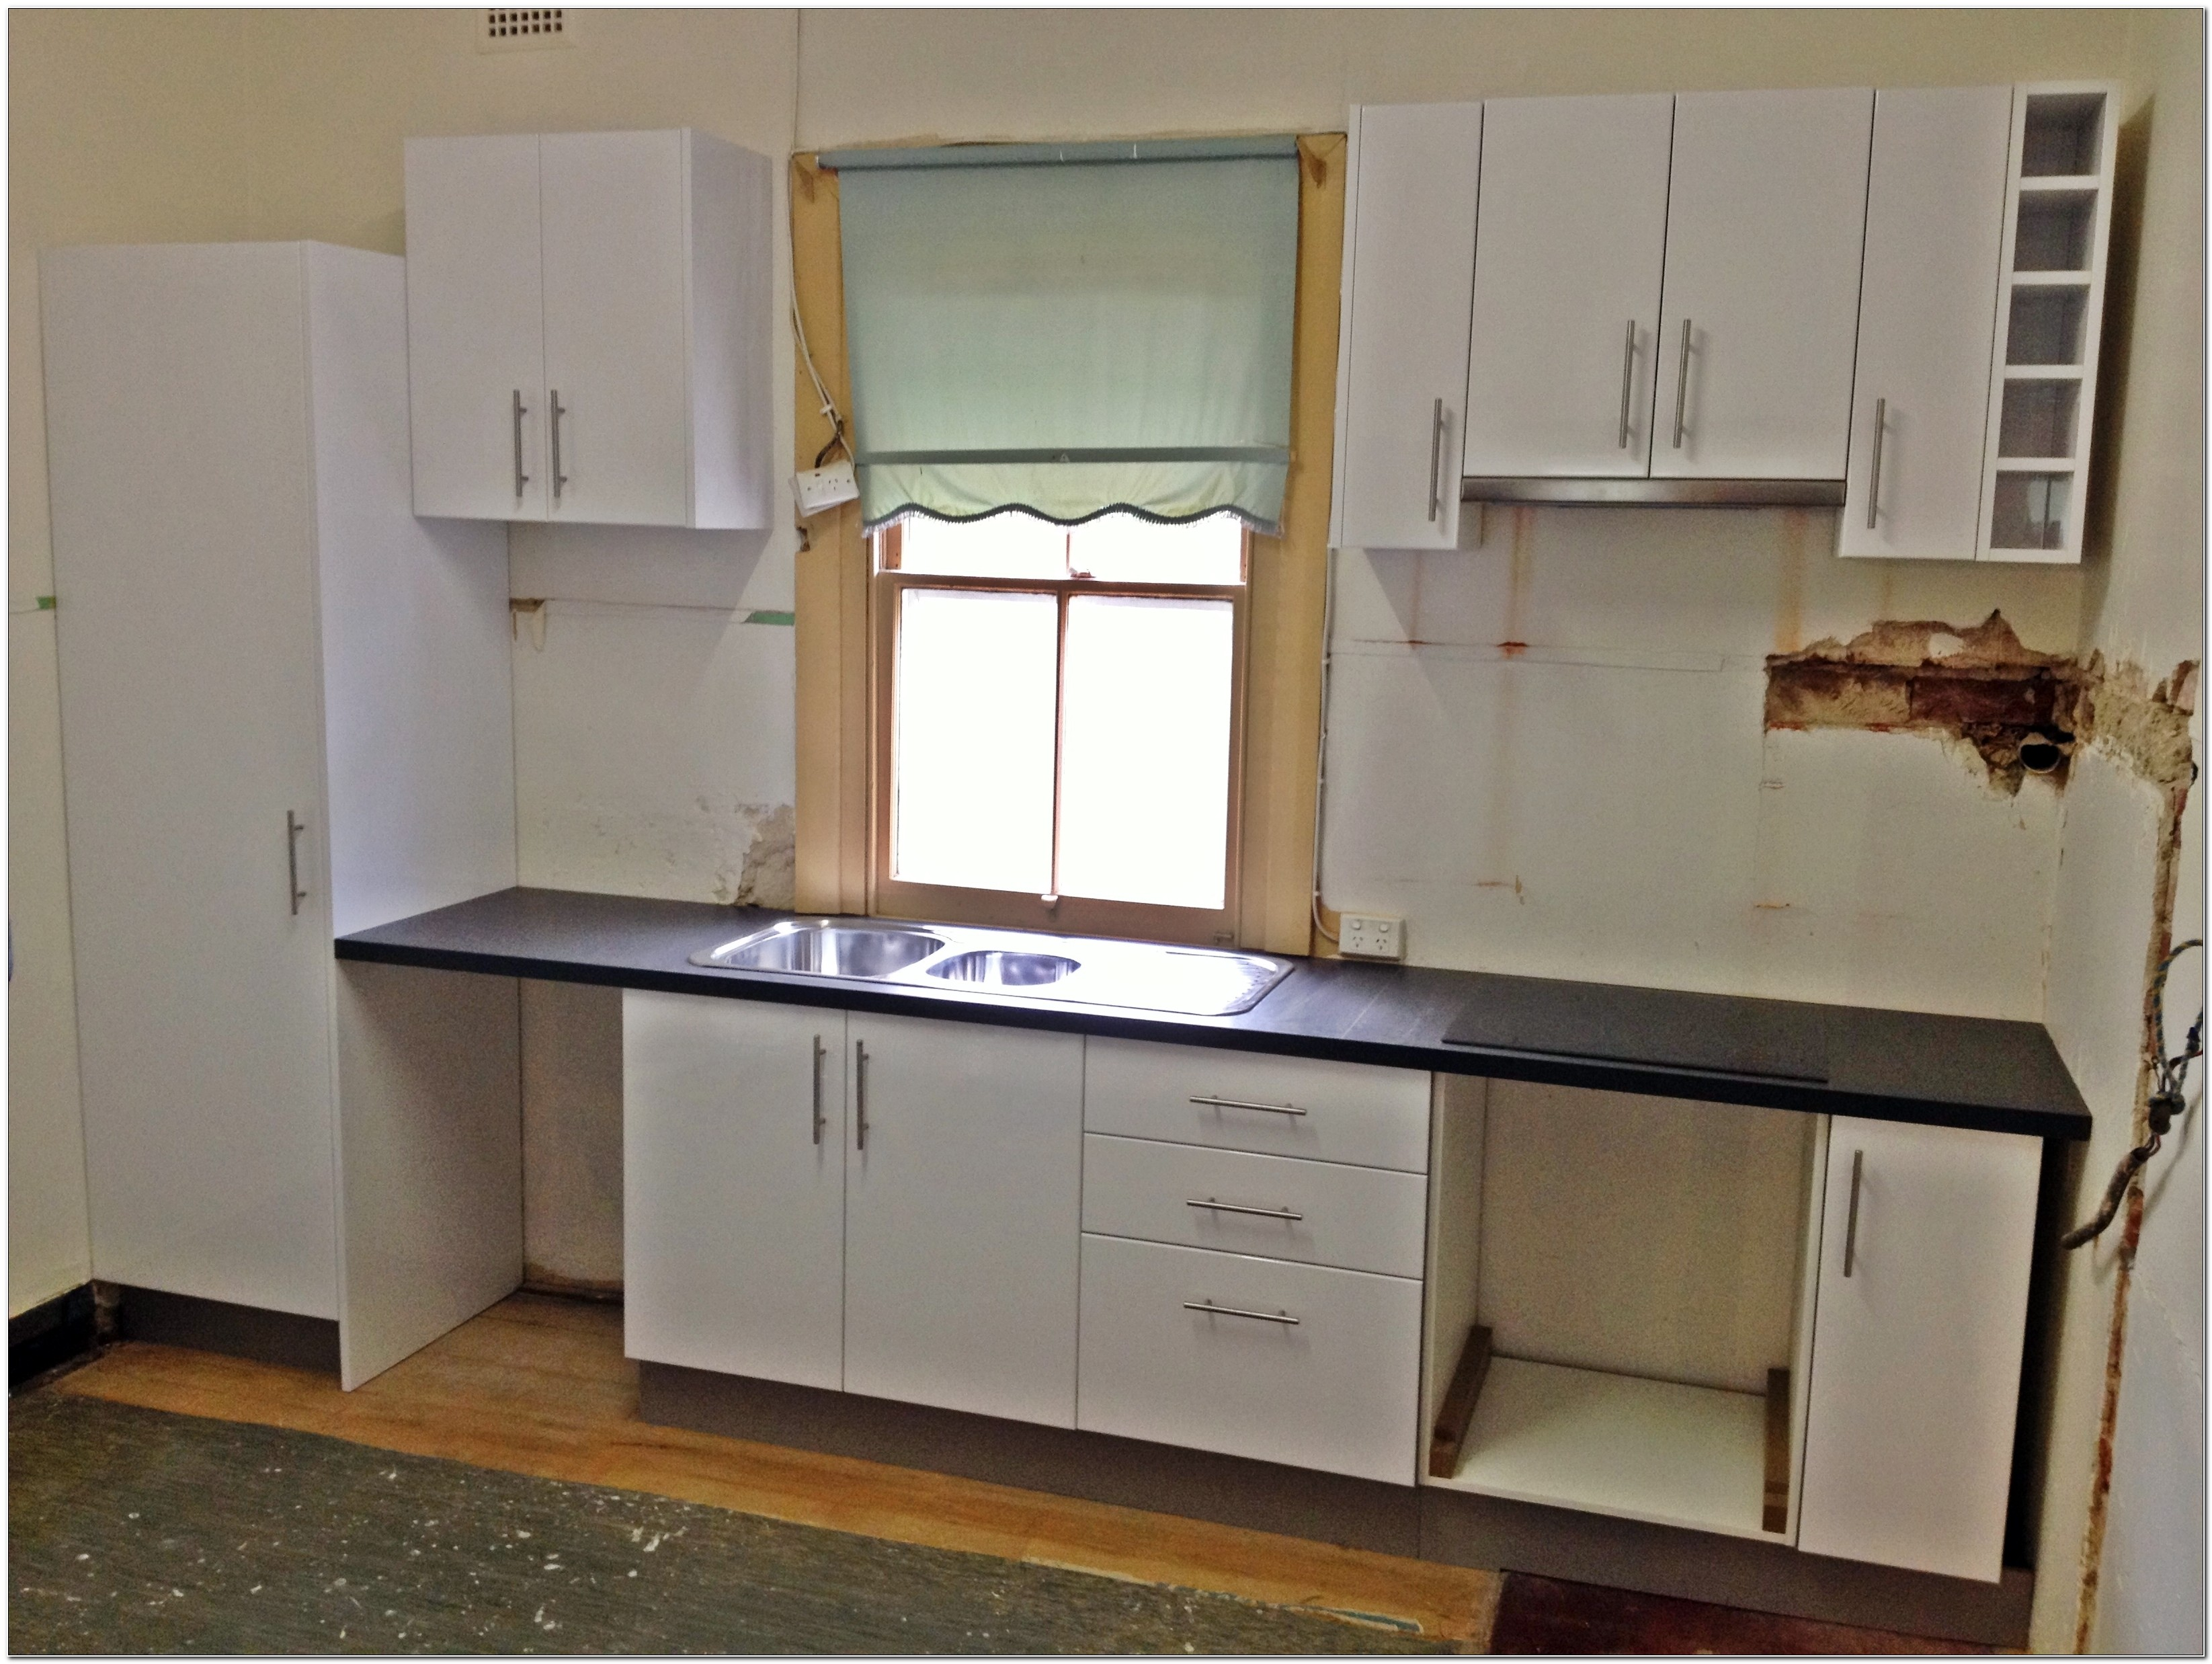 Flat Pack Kitchen Cabinets Bunnings Cabinet Home Design Ideas Qlyjoynk3p